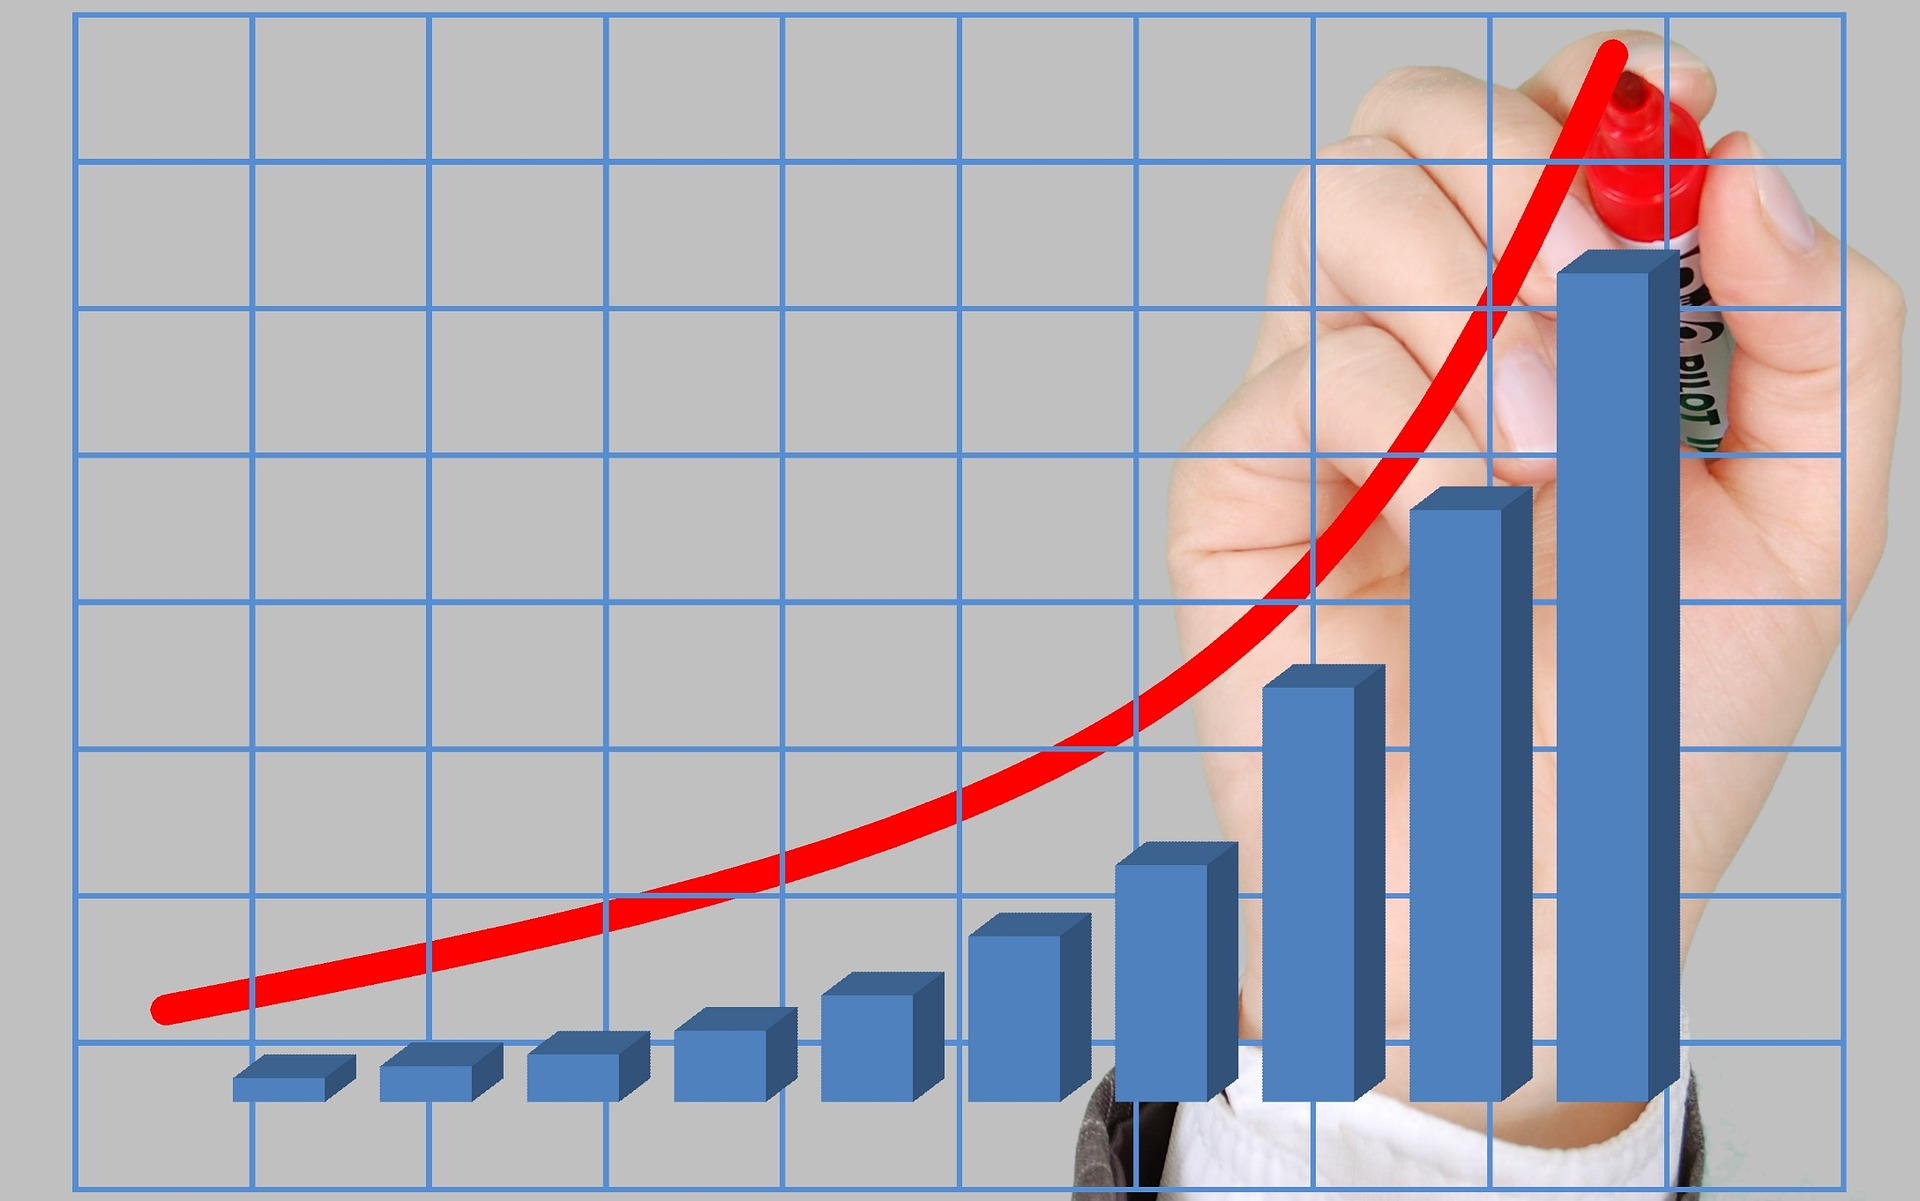 Steps to Increasing Sales Revenue per Resource